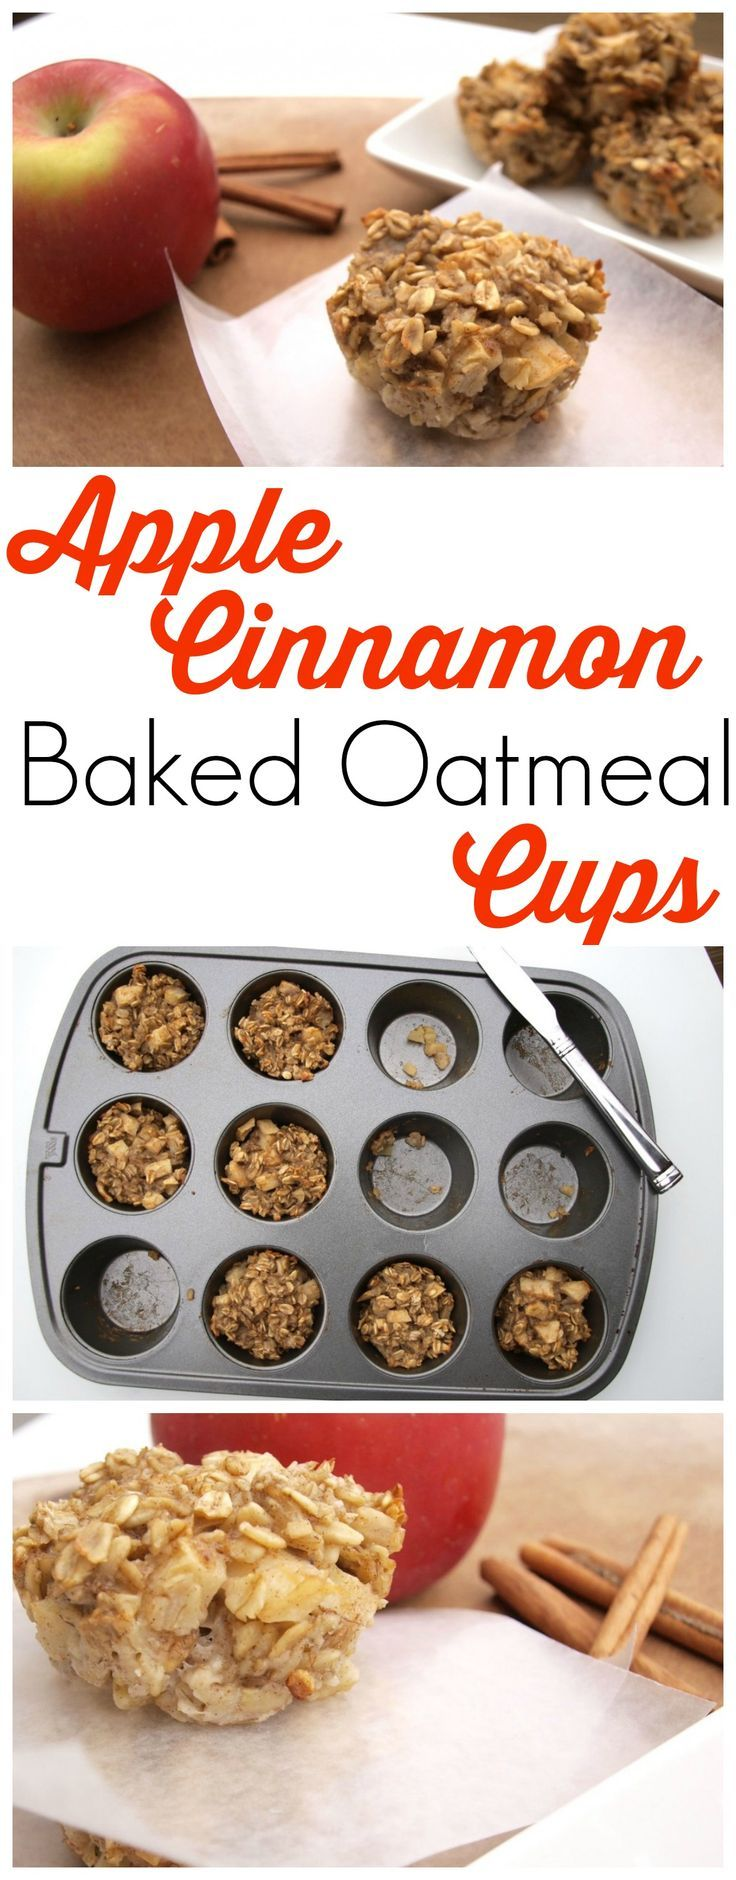 These Apple Cinnamon Baked Oatmeal Cups are a perfect portable oatmeal option! My kids love these and they are super healthy. It's so easy to mix this the night before and just bake it in the morning. Great easy breakfast recipe!